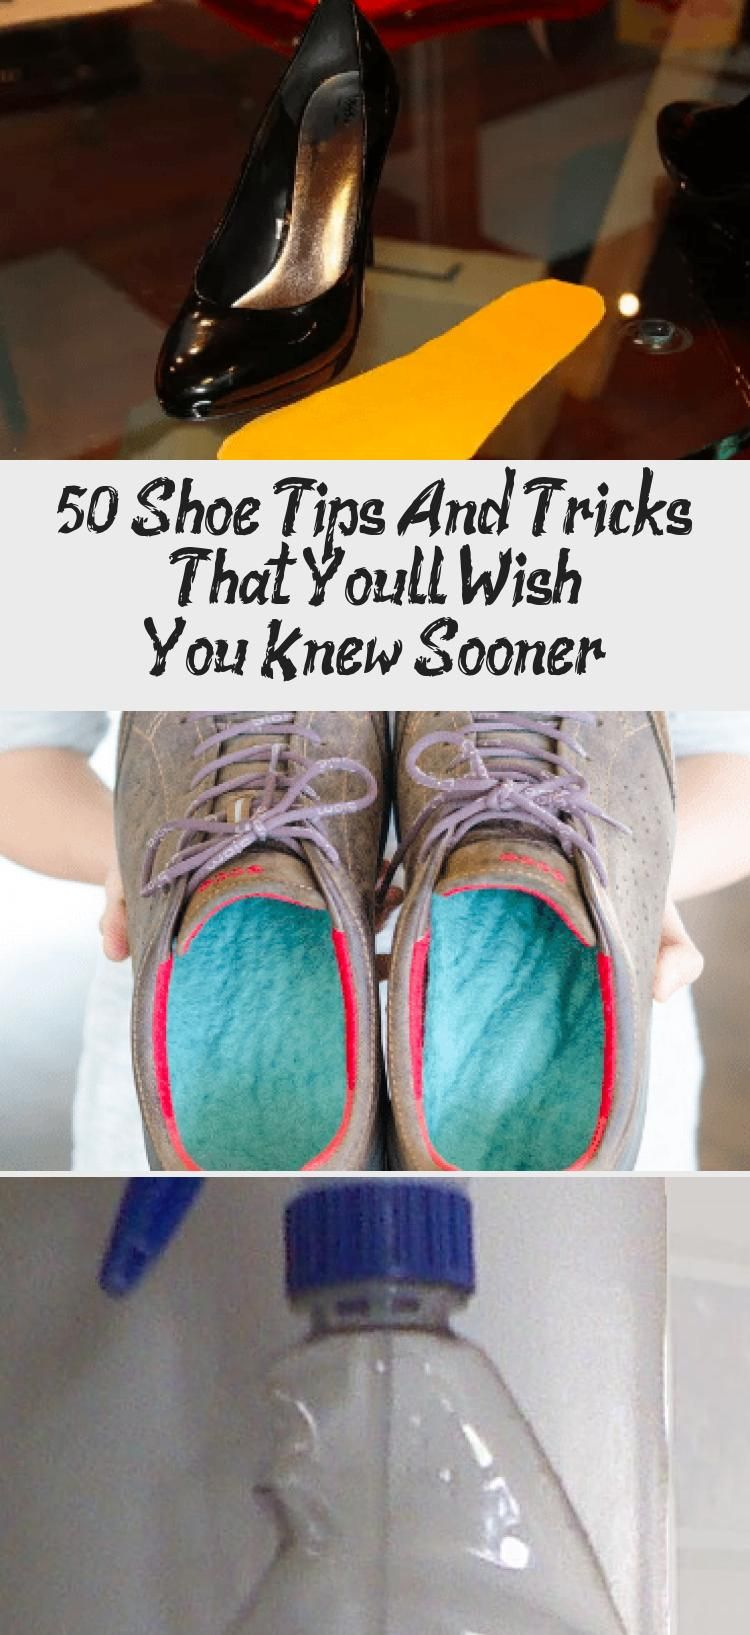 50 Shoe Tips And Tricks That You Ll Wish You Knew Sooner Buying Home Shoe Lace Patterns Squeaky Shoes Clean Shoes